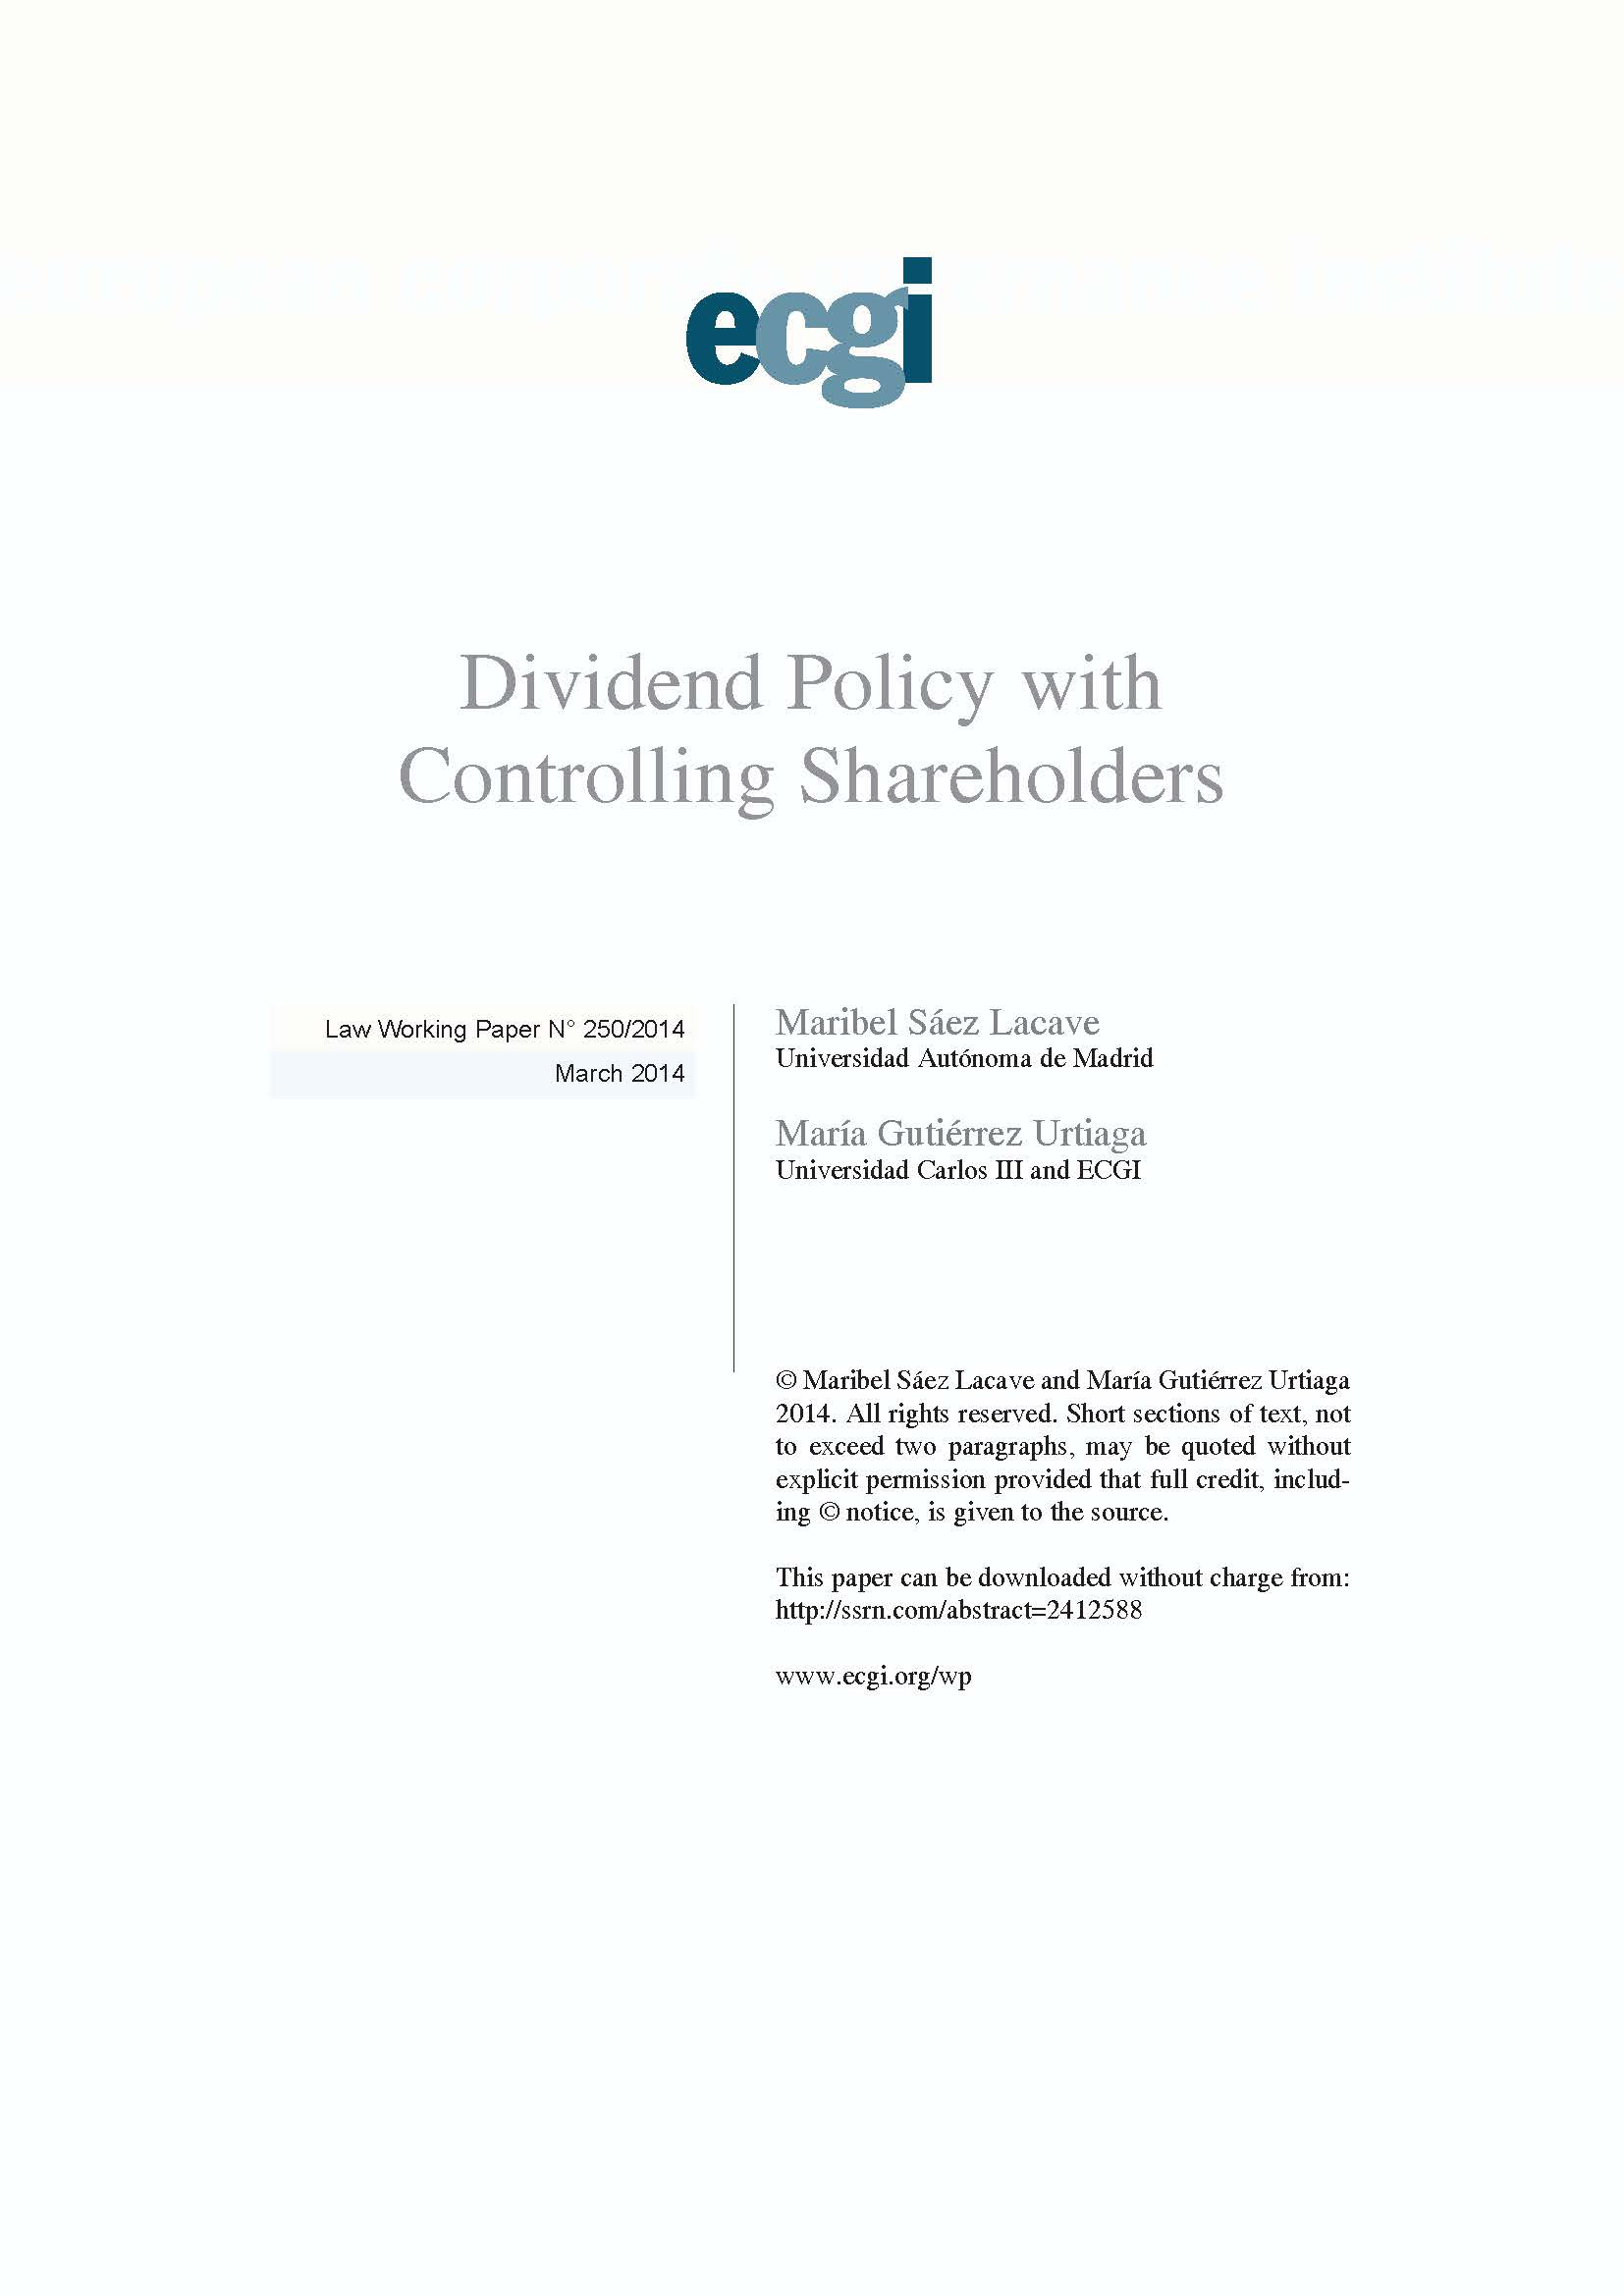 dividend policy on share holders A dividend policy can also affect the value of shares if a buyer knows that value can only be released in certain ways, he or she may be willing to pay less to acquire the shares a dividend policy may very well be a term you want to include in your shareholders agreement , even if your start-up is unlikely to pay dividends for a number of years.